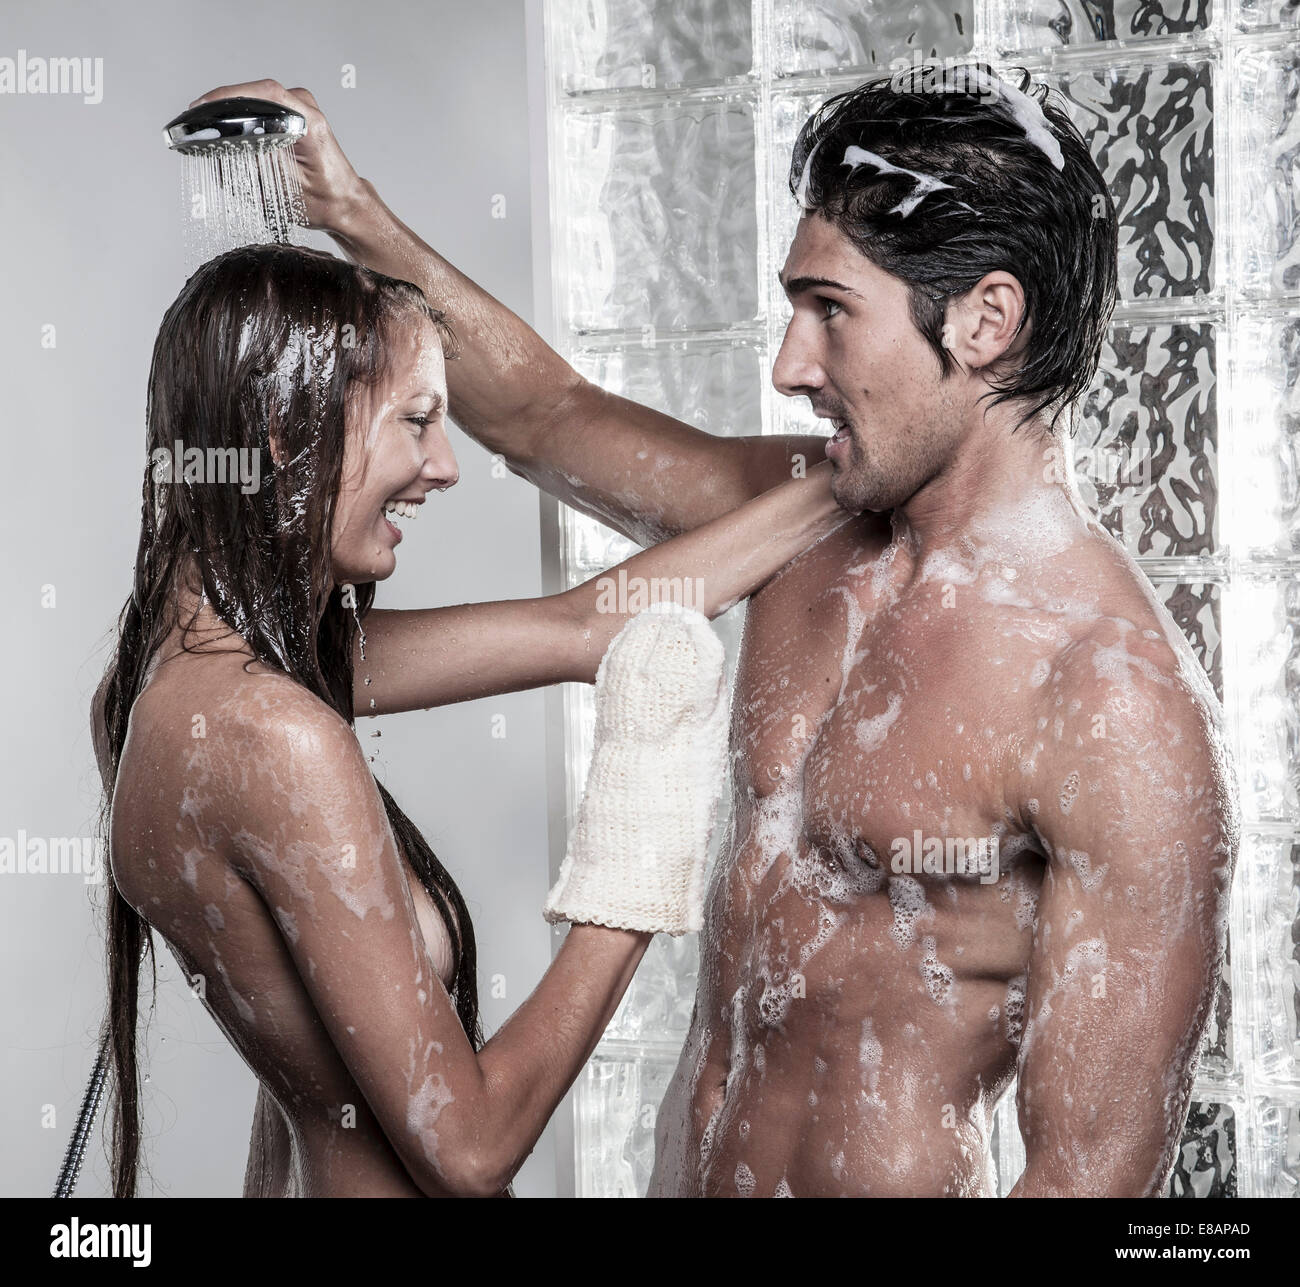 Get one man and woman shower together naked THE SIZE